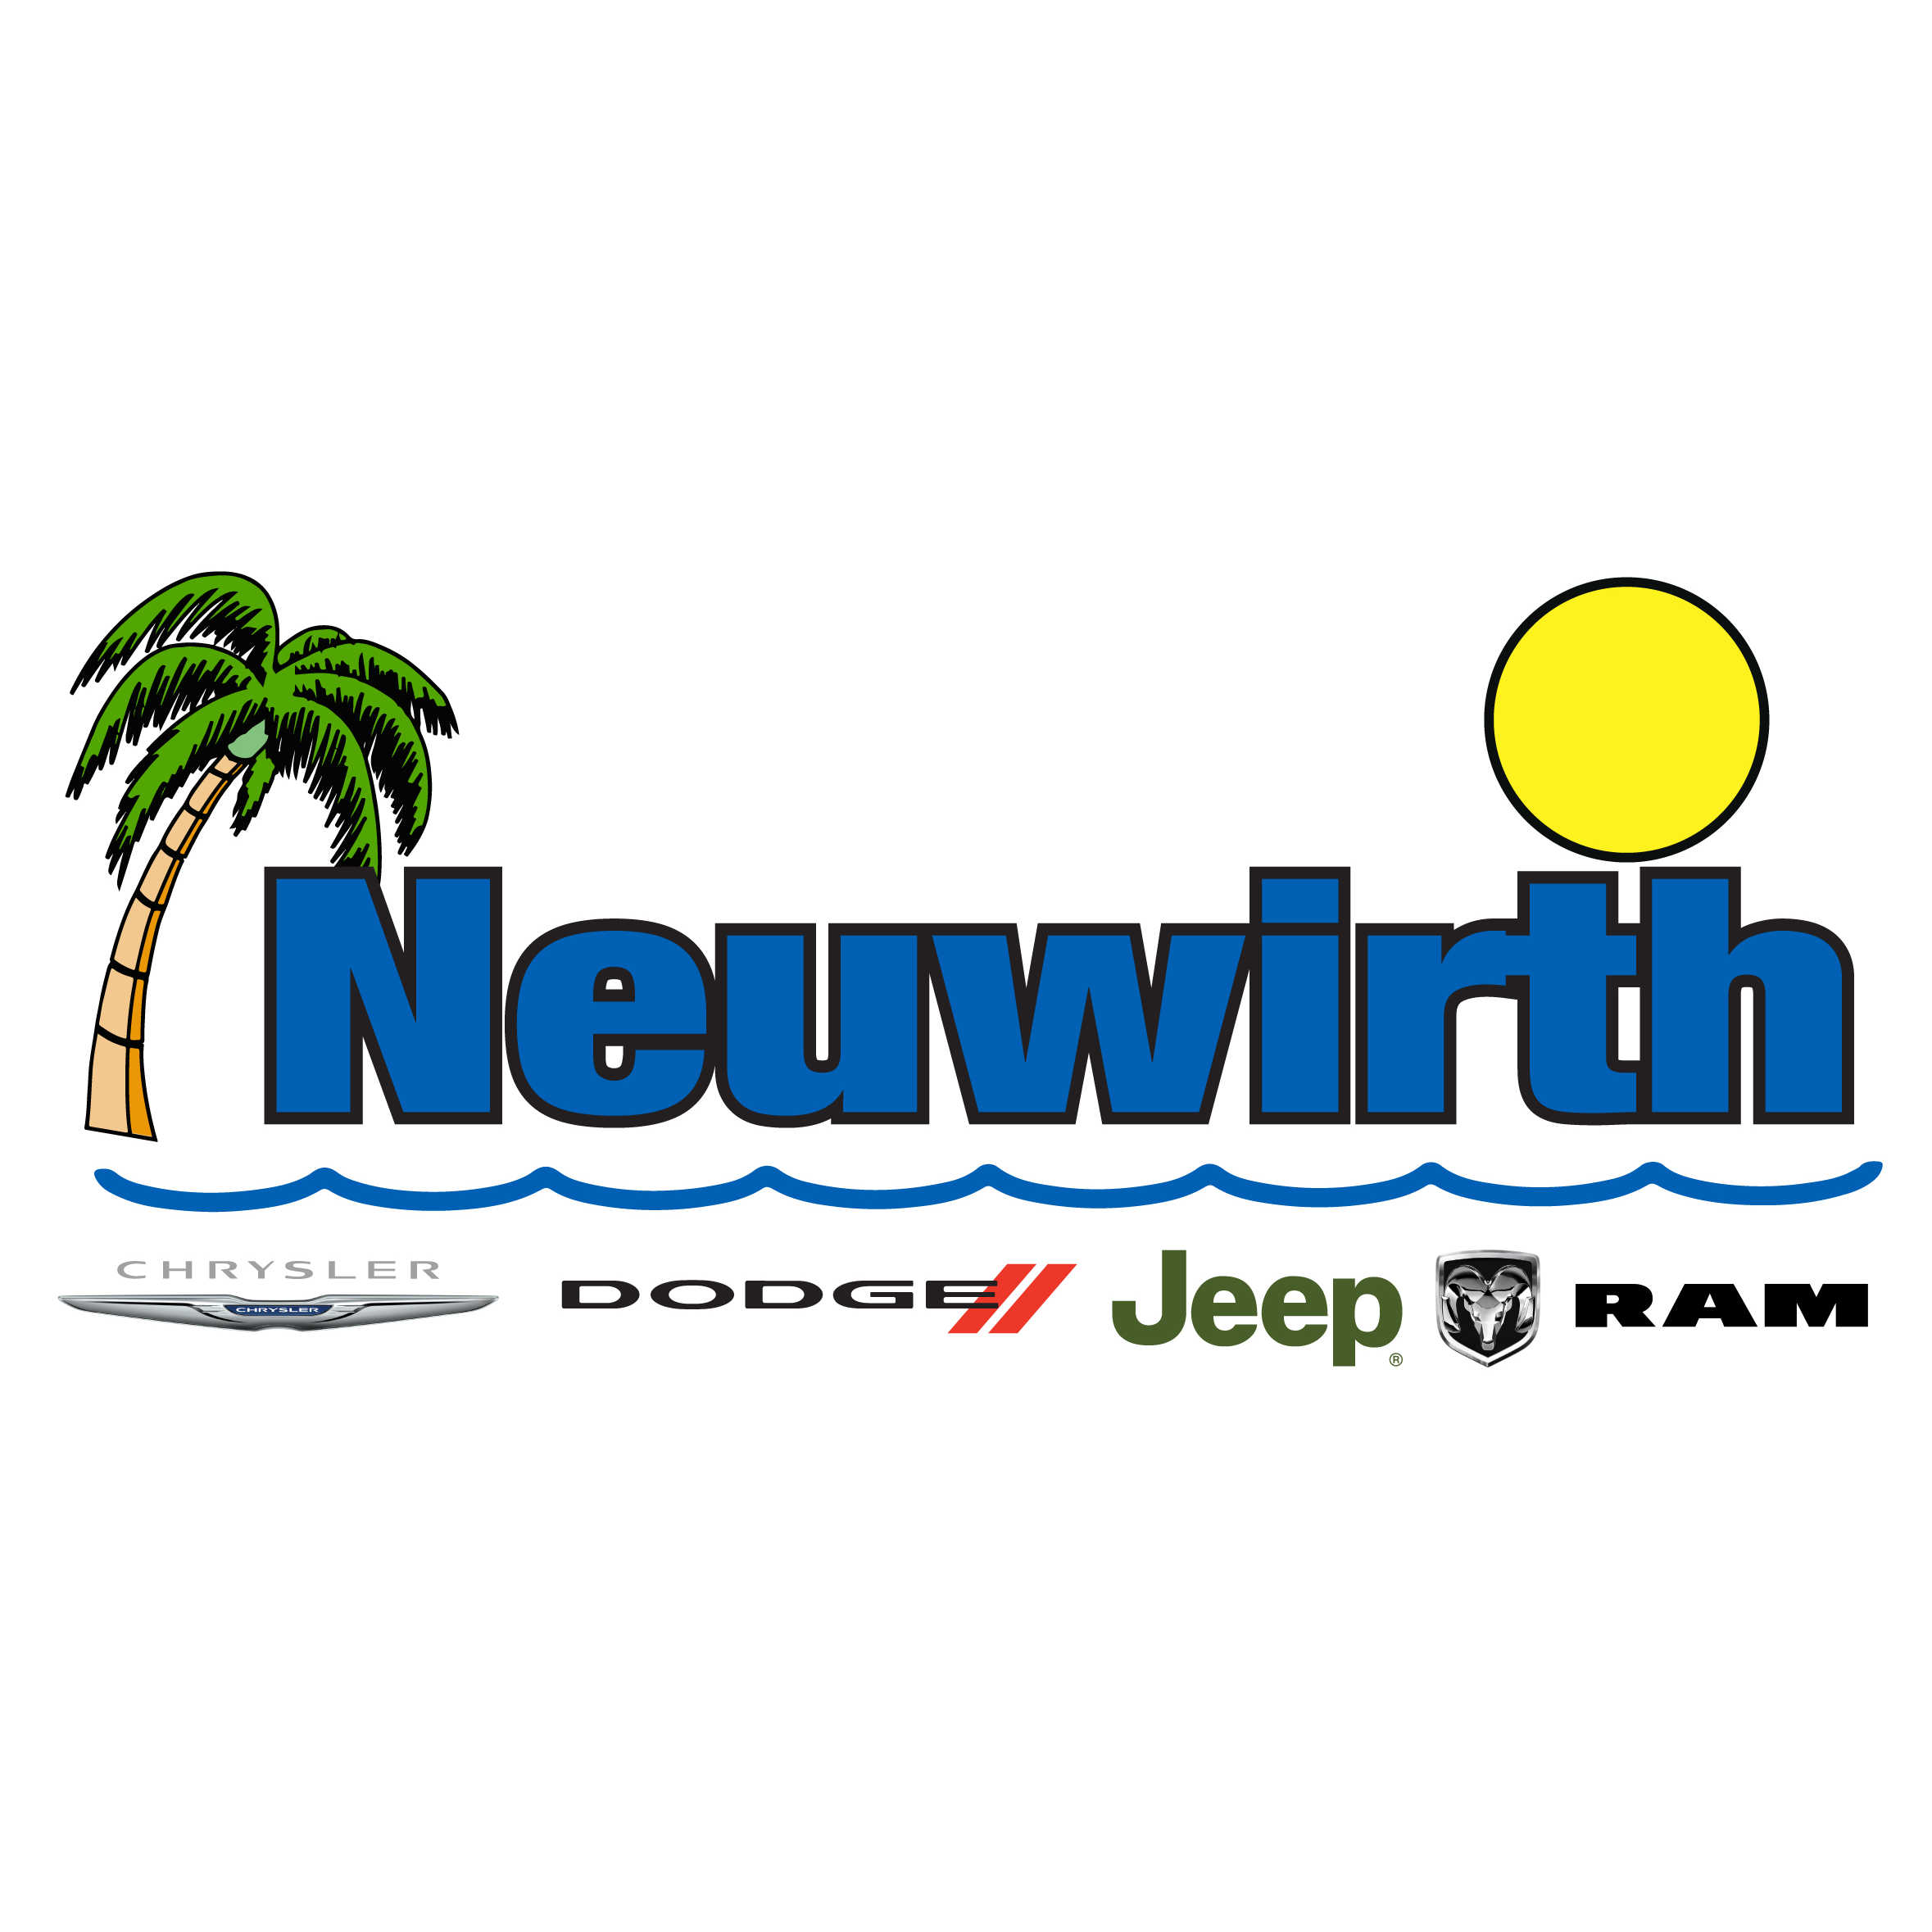 Neuwirth motors wilmington nc company information Neuwirth motors in wilmington nc